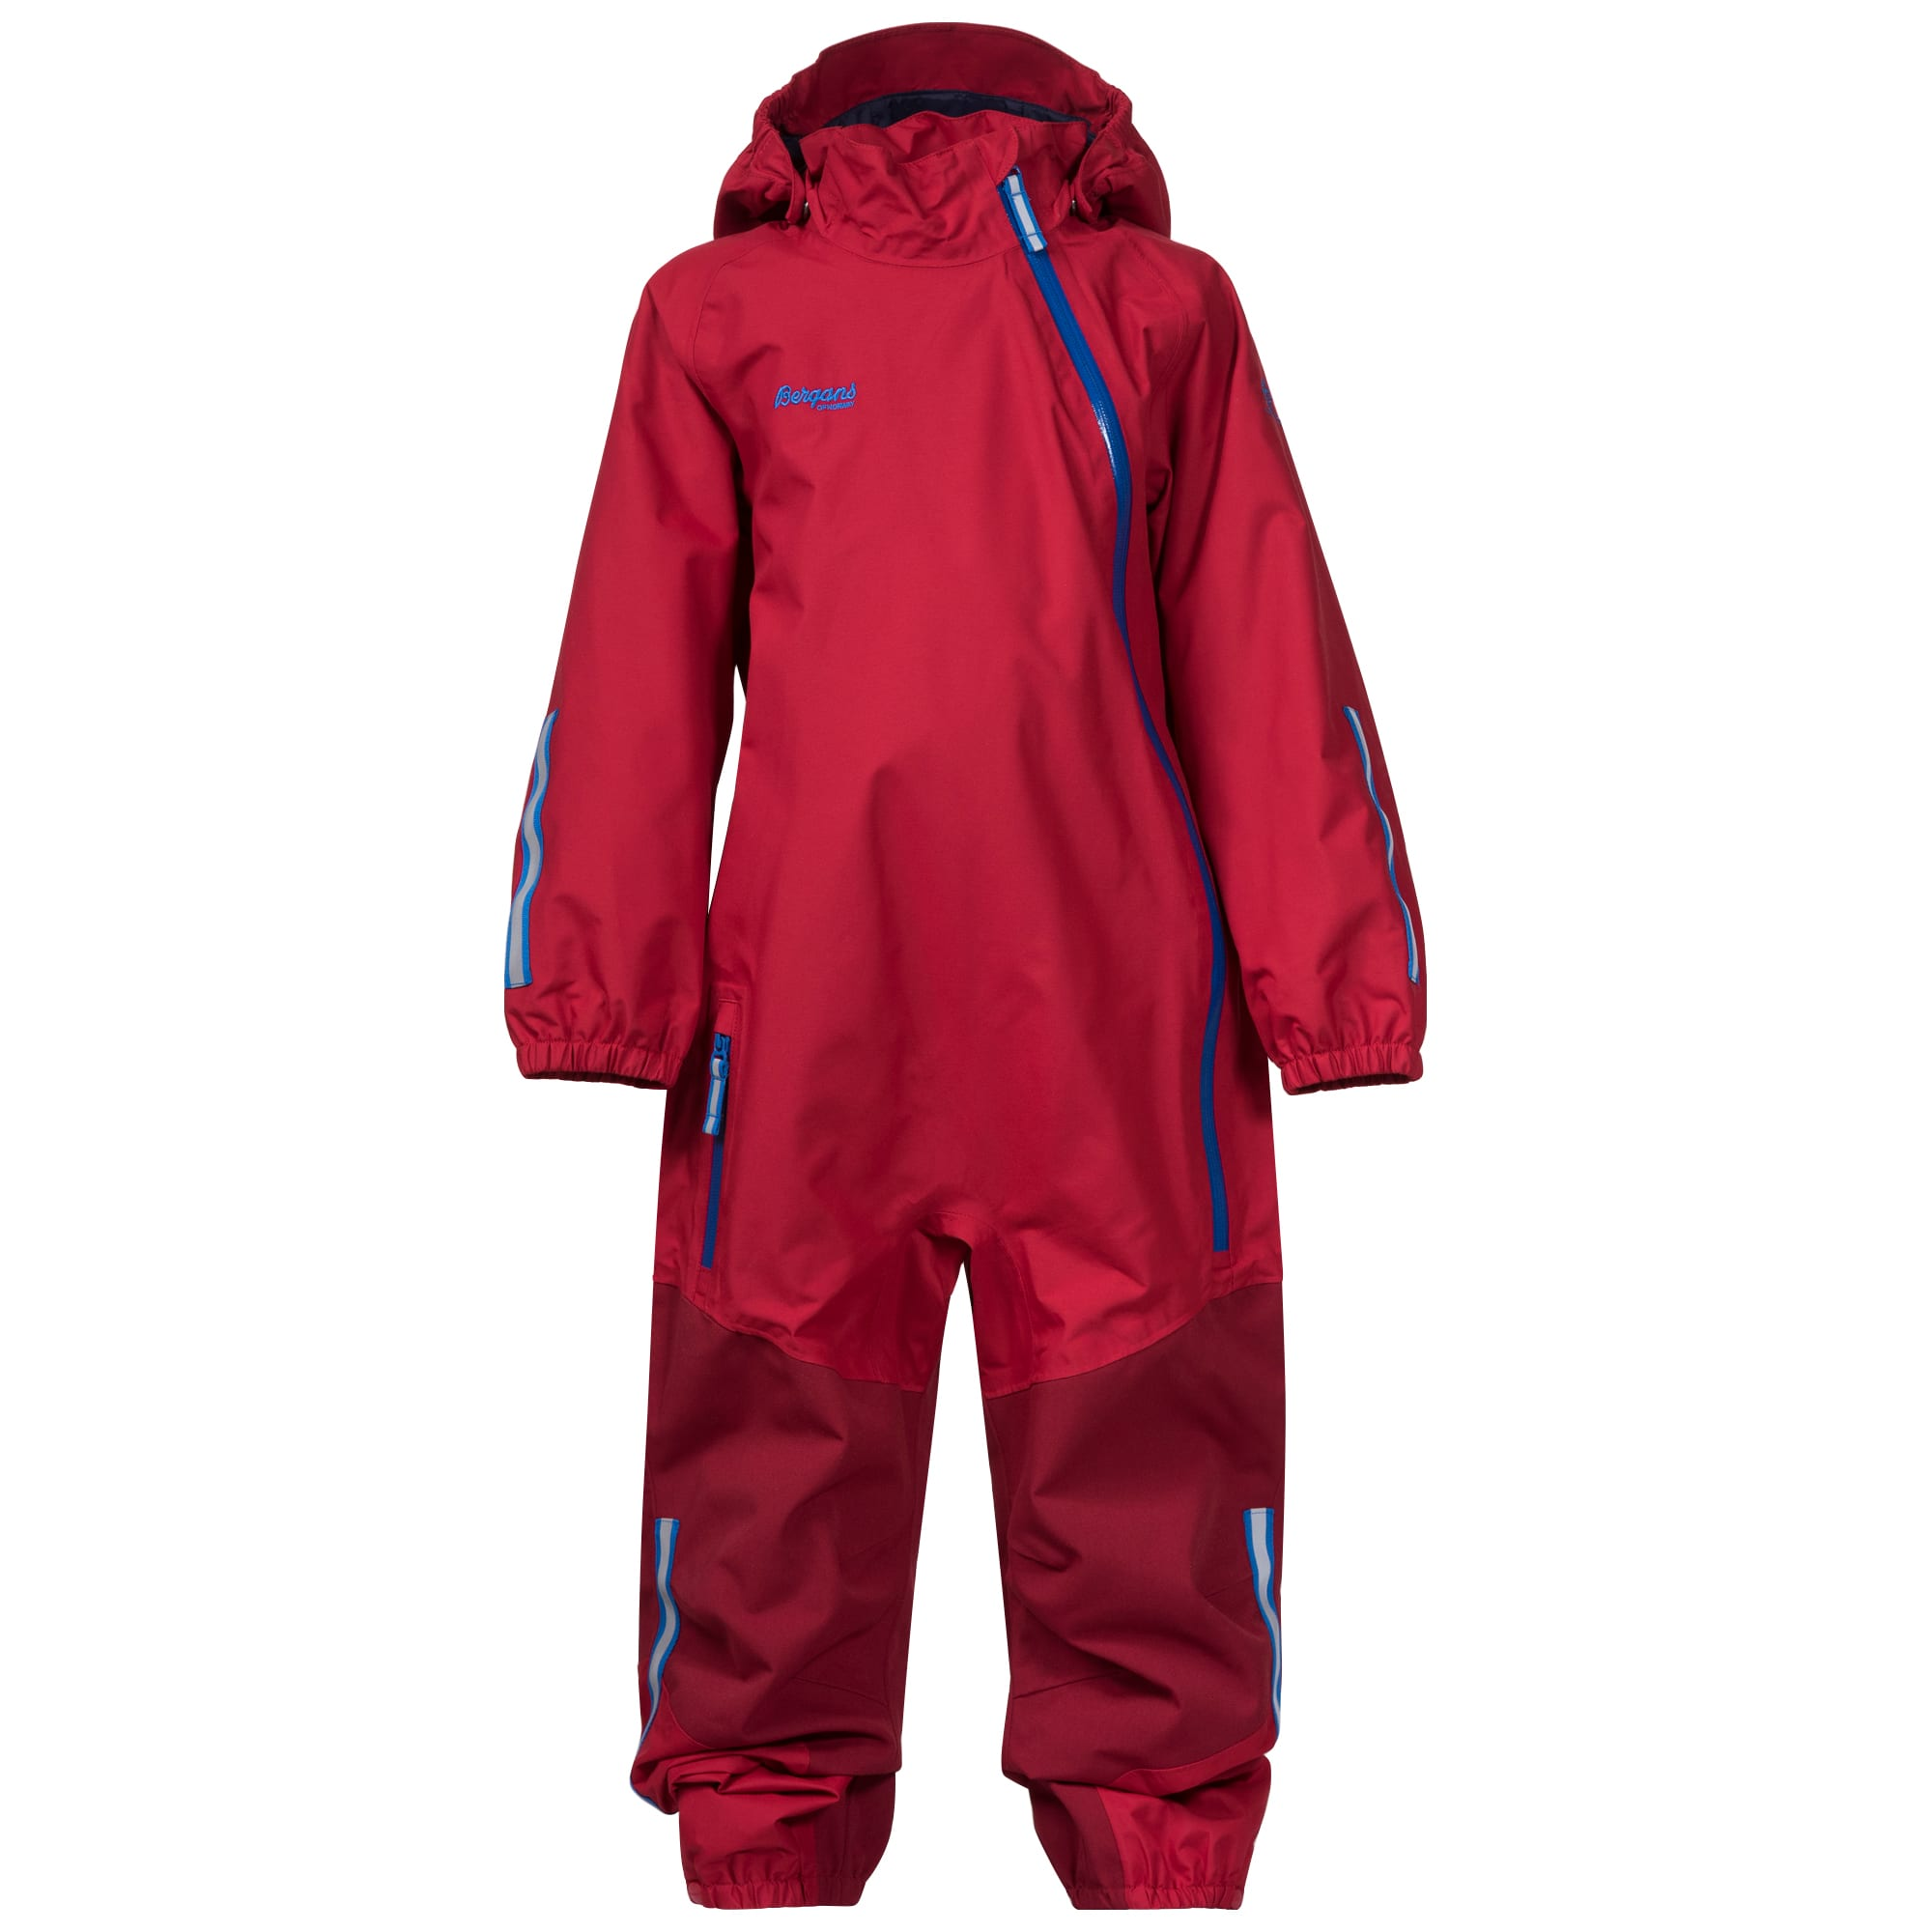 Buy Bergans Lilletind Kids Coverall from Outnorth 69649d85a4